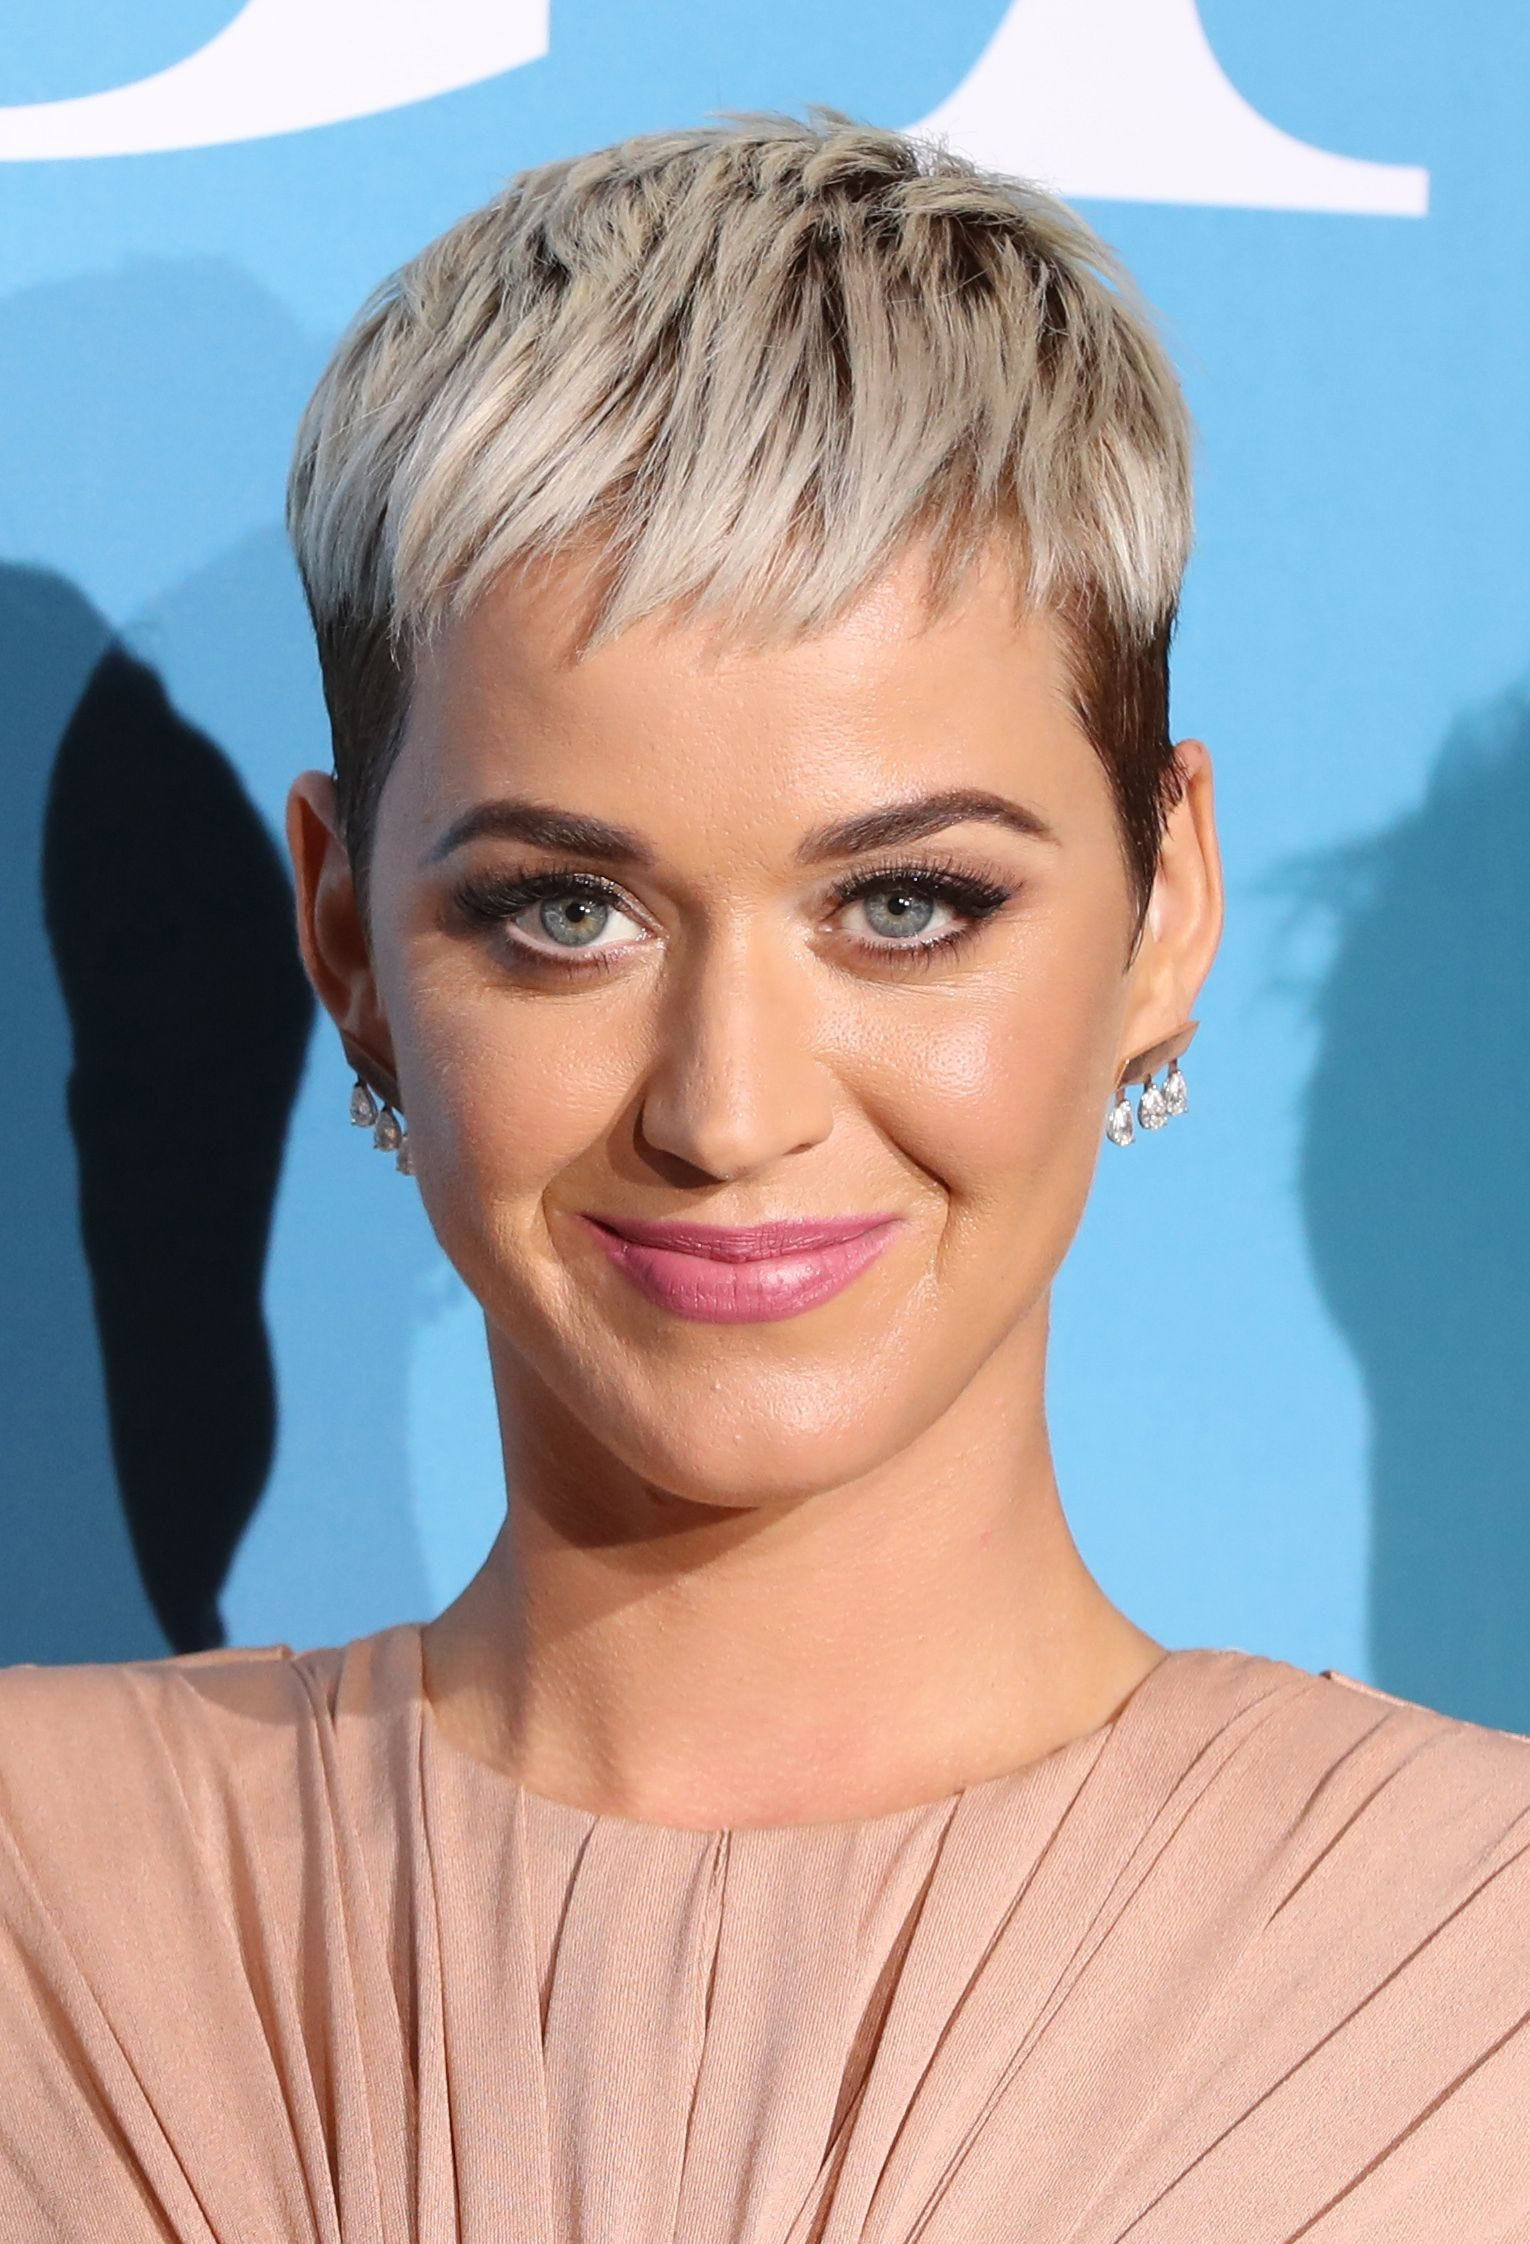 Images Katy Perry nudes (55 photos), Pussy, Hot, Twitter, underwear 2018